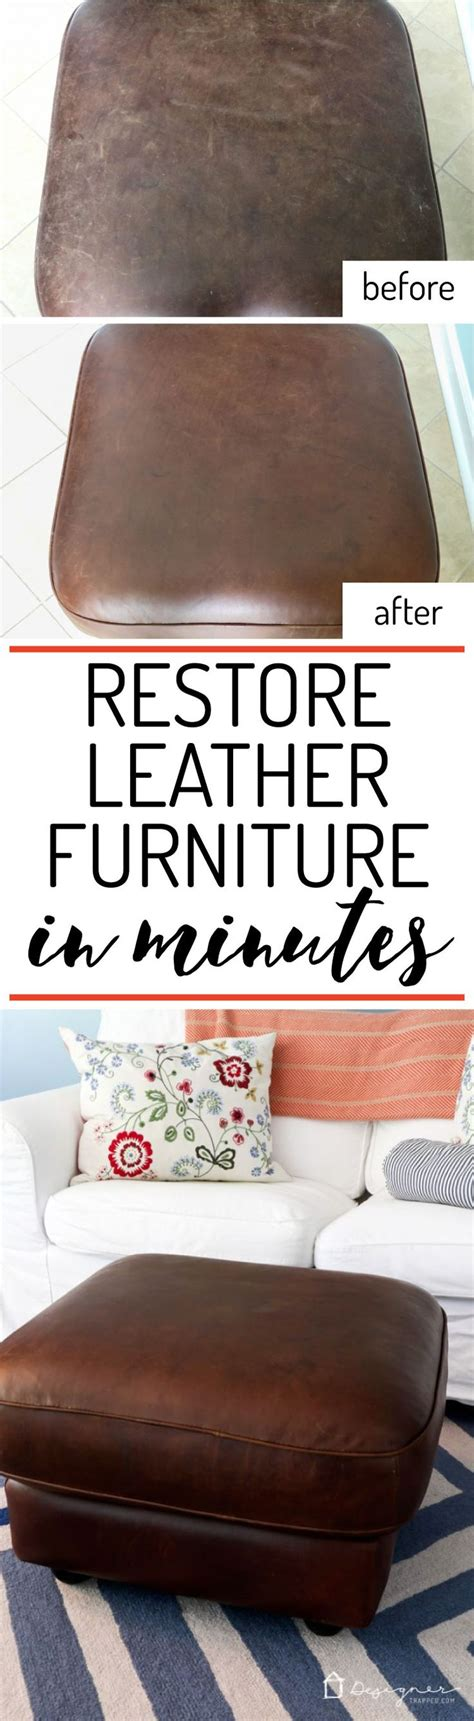 leather couch repair ideas  pinterest leather